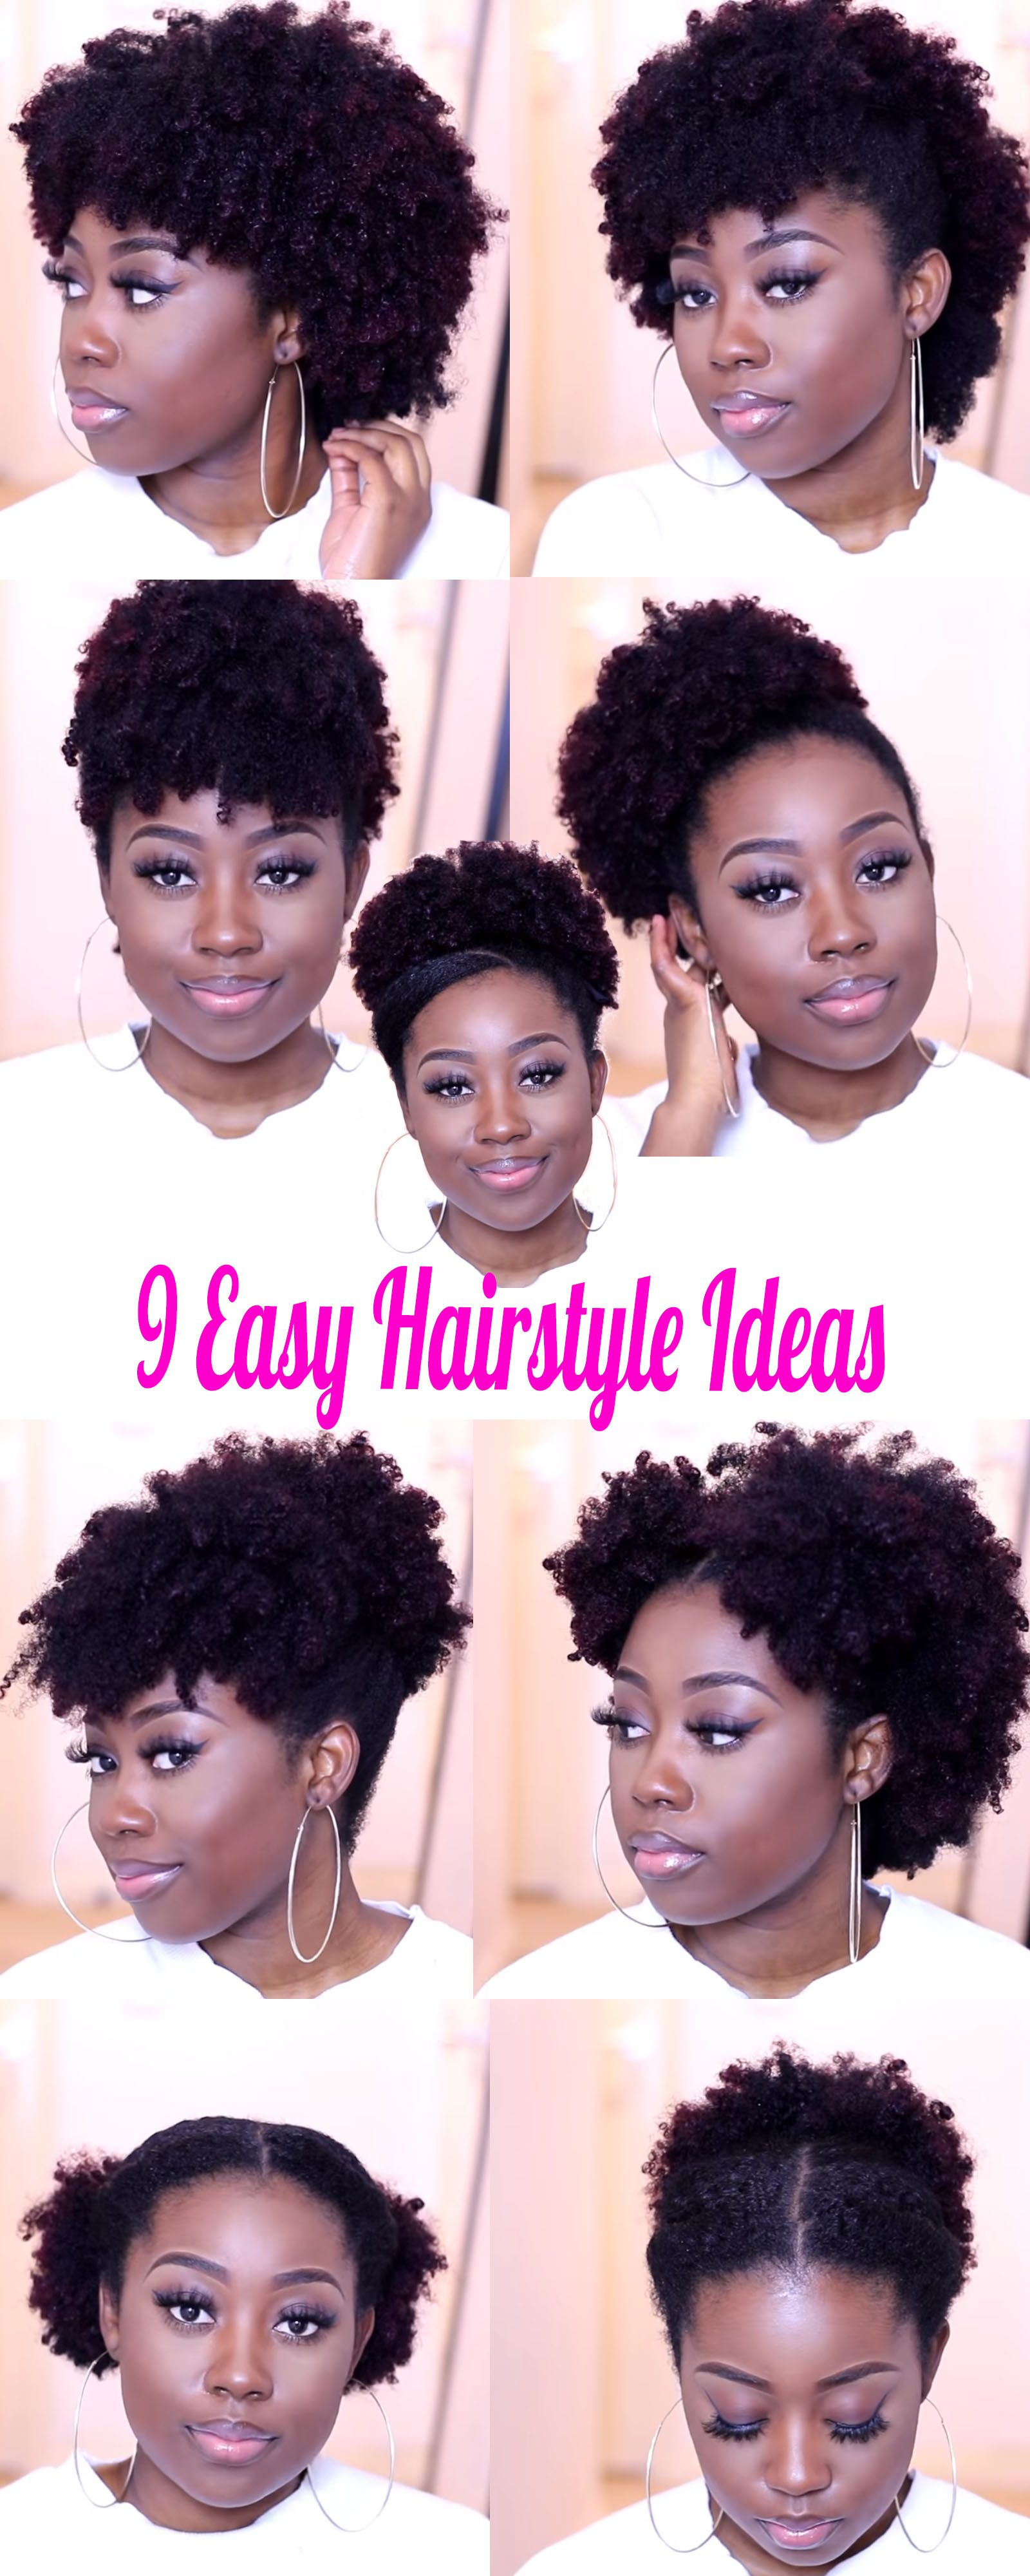 9 Medium Natural Hairstyle Ideas You Can Quickly Create On The Go African American Hairstyle Videos Aahv Short Natural Hair Styles Natural Hair Styles Easy Natural Hair Styles